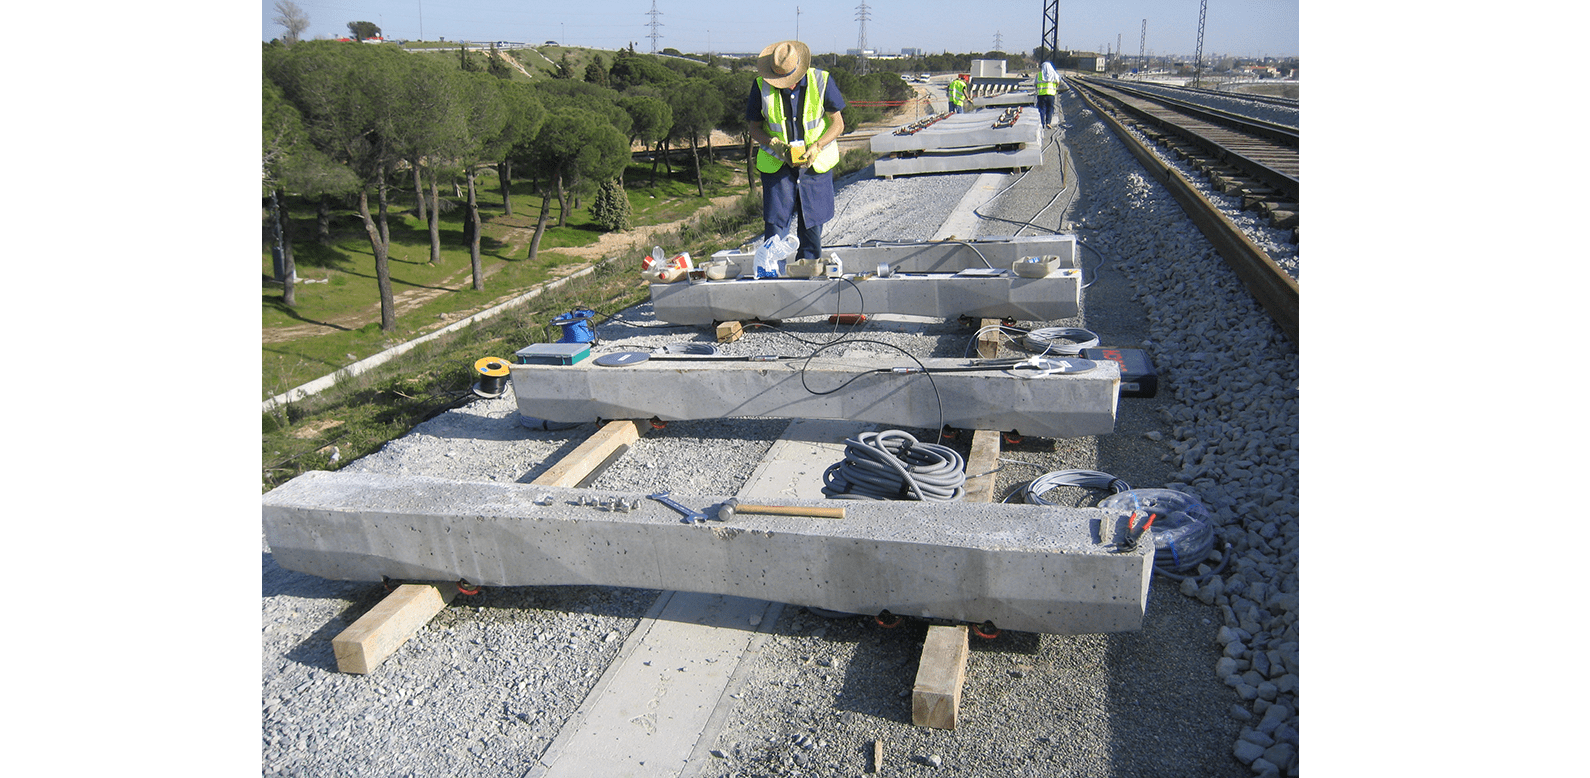 Total Pressure Cells being installed on sleepers on high speed rail